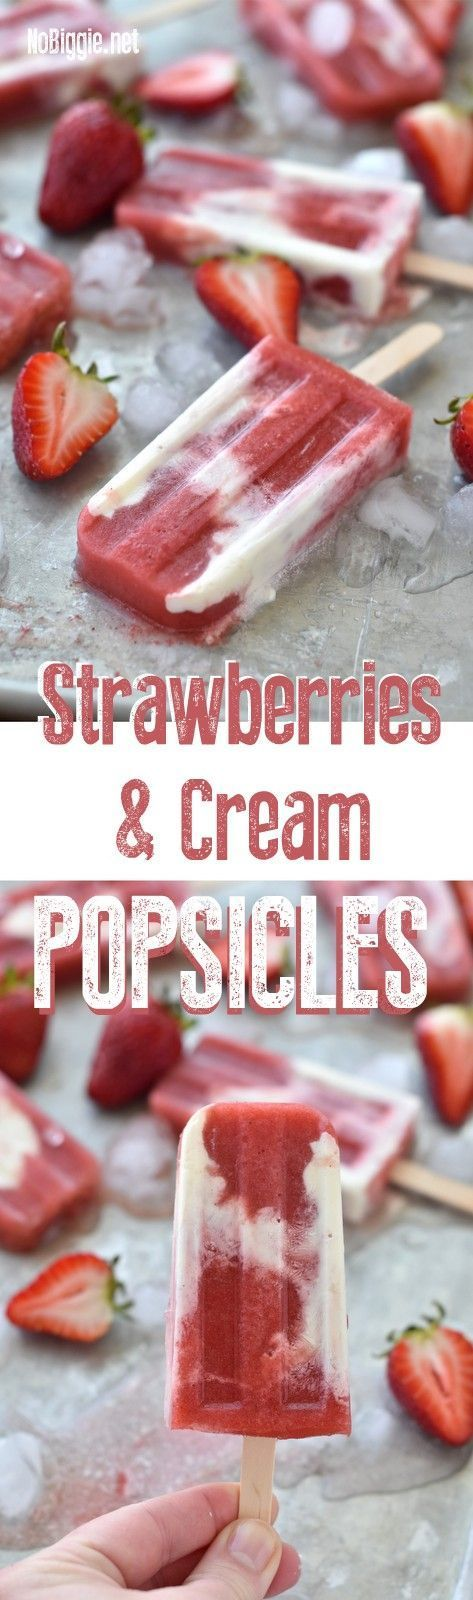 Strawberries and Cream Popsicles is part of Popsicles - Make homemade strawberries and cream popsicles  Strawberries and Cream Popsicle Recipe We are dreaming of Summer already over here  Before you know it, we'll all be craving frosty cold treats from the freezer, and these Strawberries and Cream popsicles are so easy to whip up  They make a fun recipe for the kids to help with too! The hardest part is waiting for them to freeze  You guys loved our three ingredient Strawberry Popsicles so much we thought it would be fun to try a new spin on them  It's so fun to make your own popsicles  For some reason